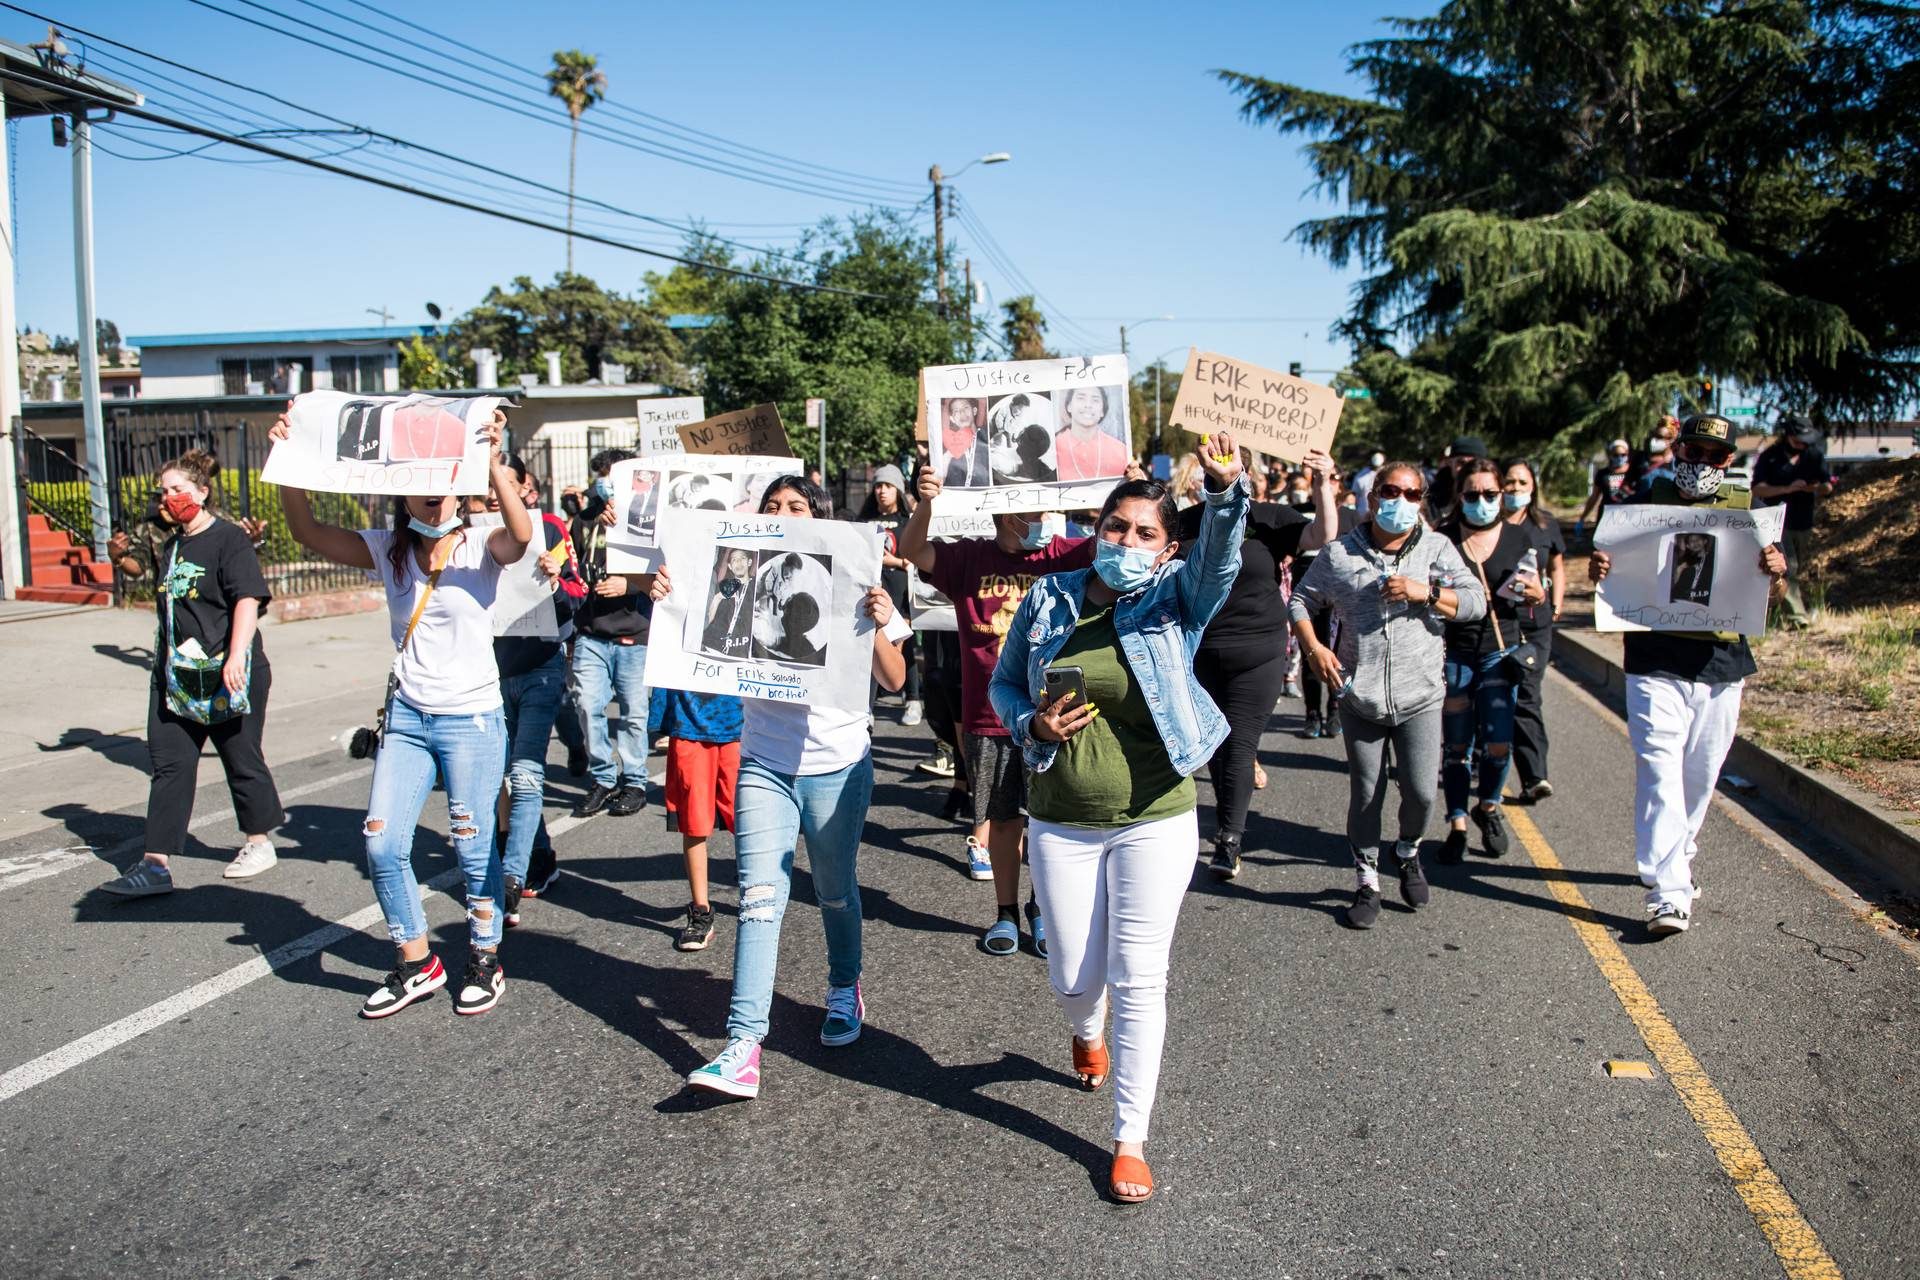 The family of Erik Salgado lead a large procession, marching from Elmhurst Middle School in East Oakland on Monday, June 8, to the site where Erik Salgado was shot and killed by California Highway Patrol officers this weekend. Beth LaBerge/KQED